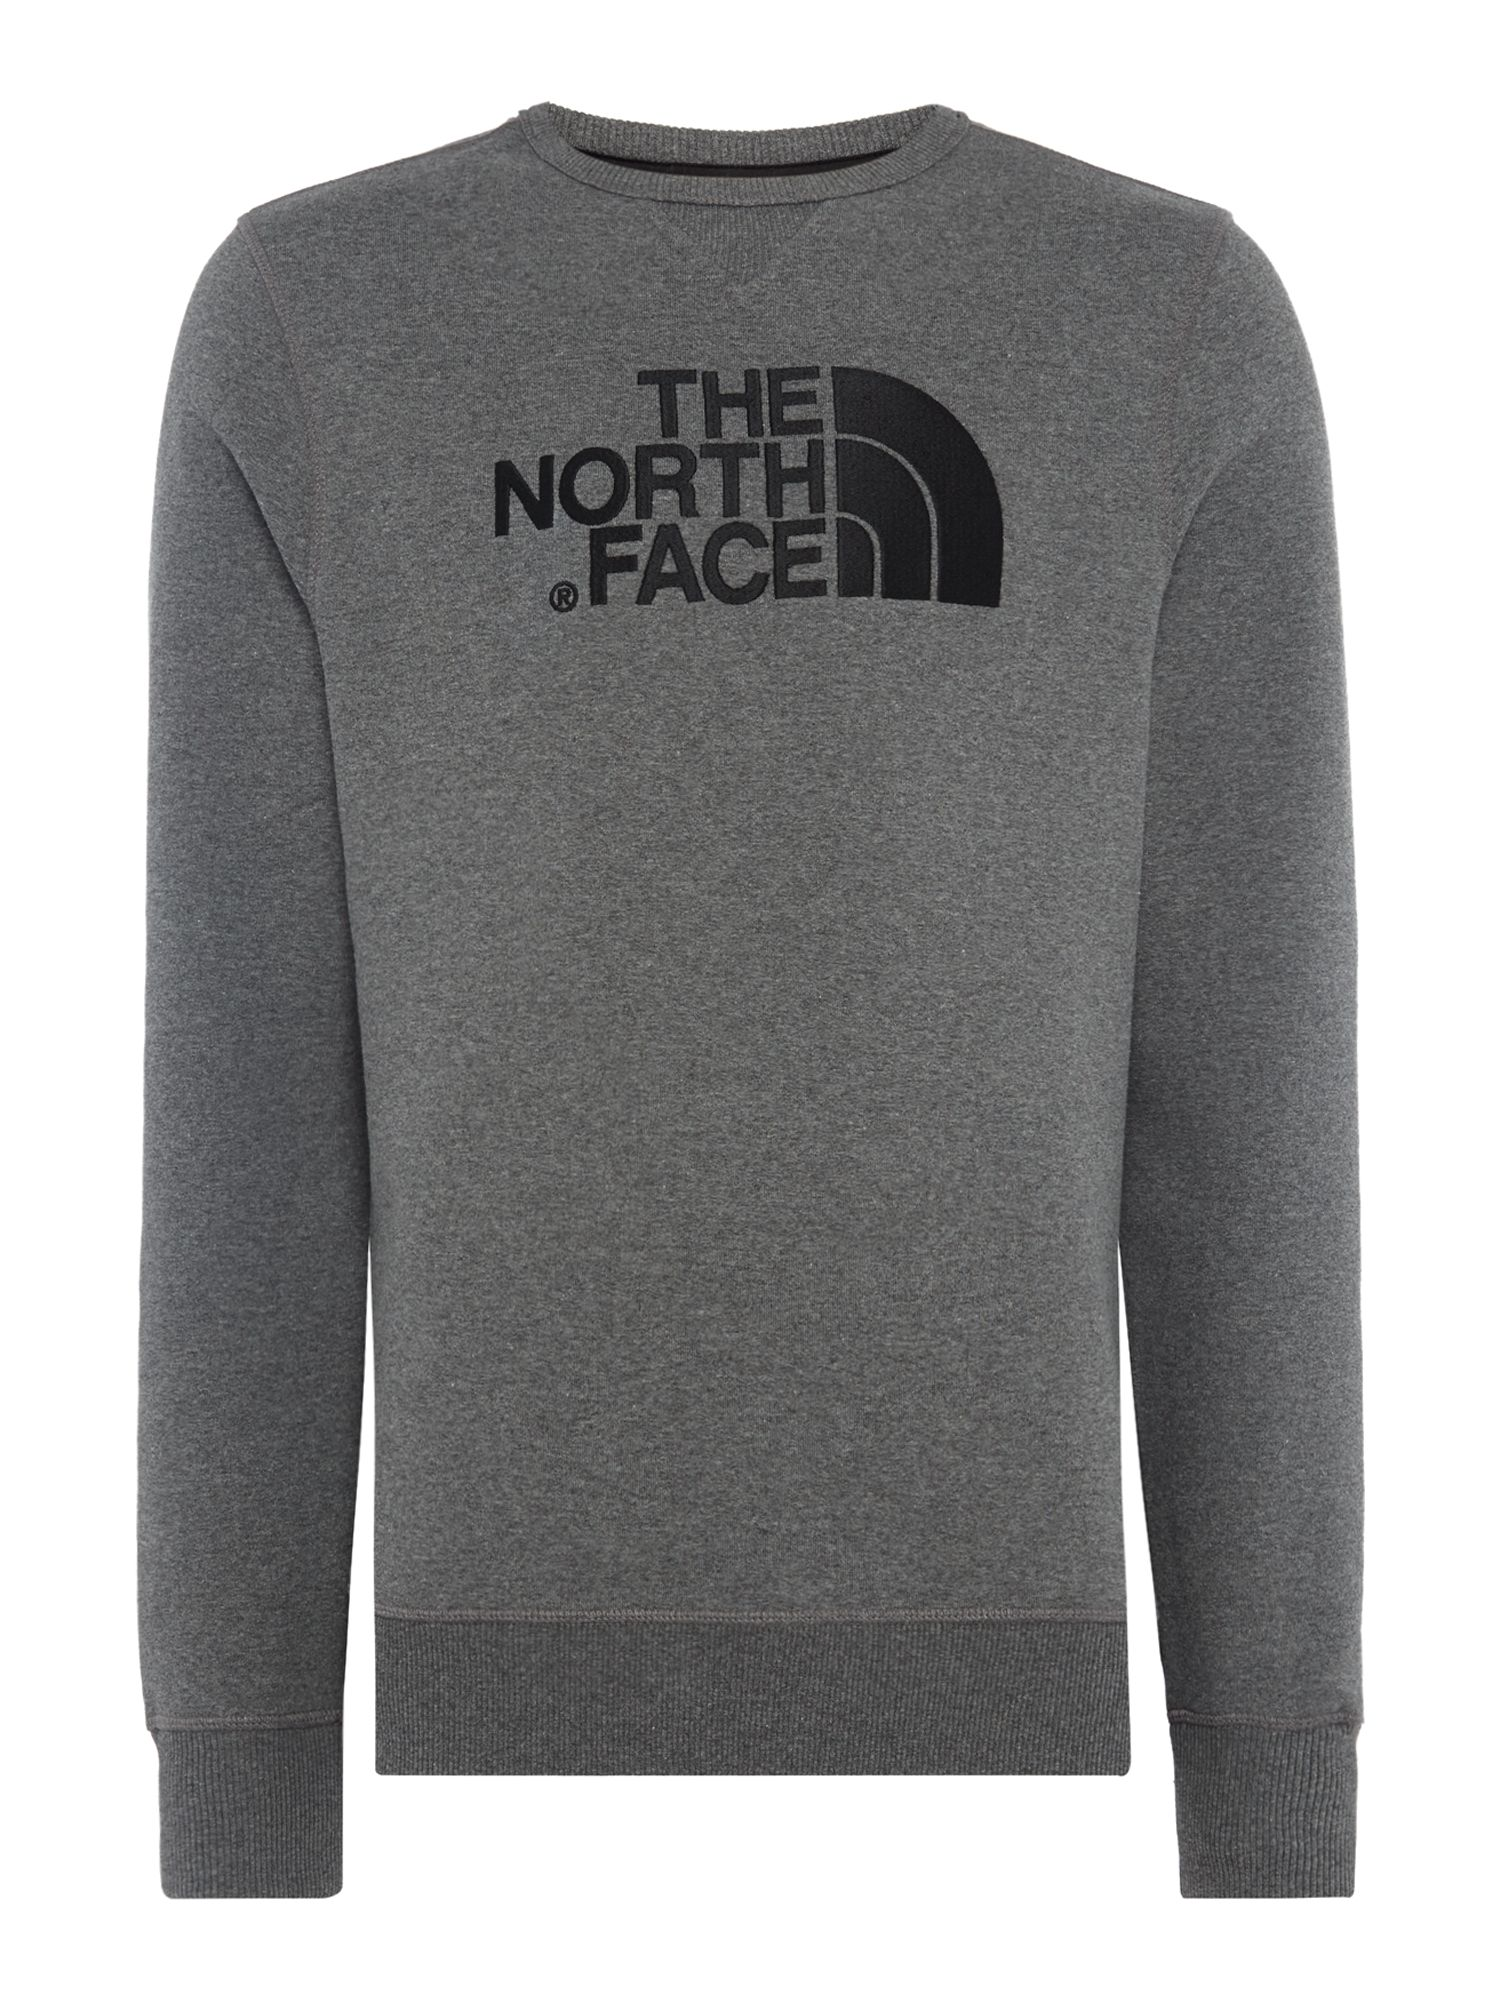 Men's The North Face Logo Crew Neck Sweat, Dark Grey